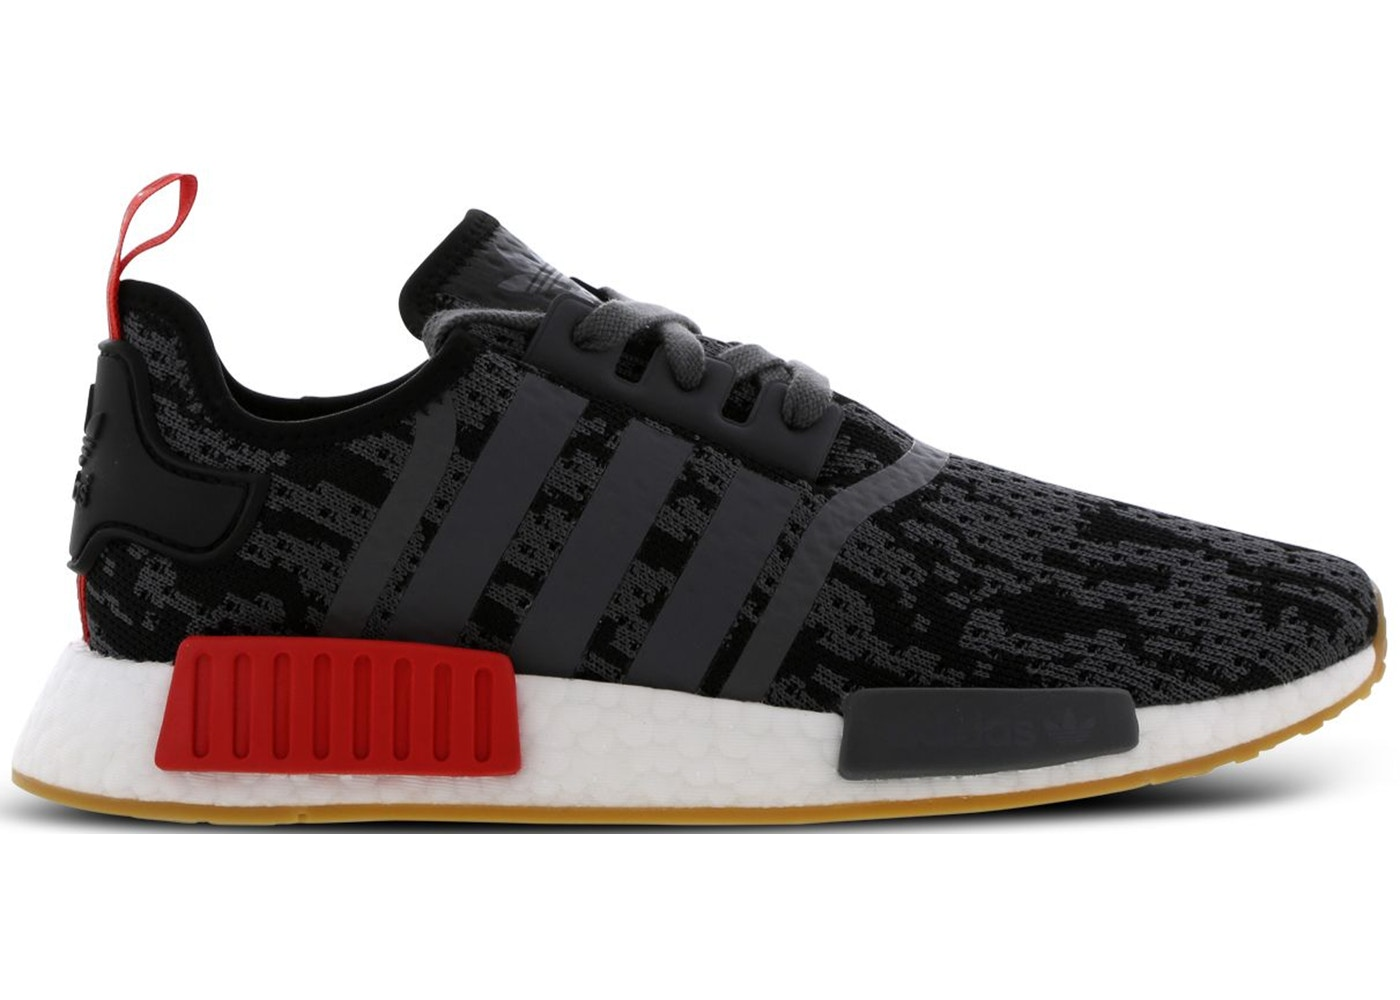 reputable site 88a08 2b952 adidas NMD Shoes - New Lowest Asks